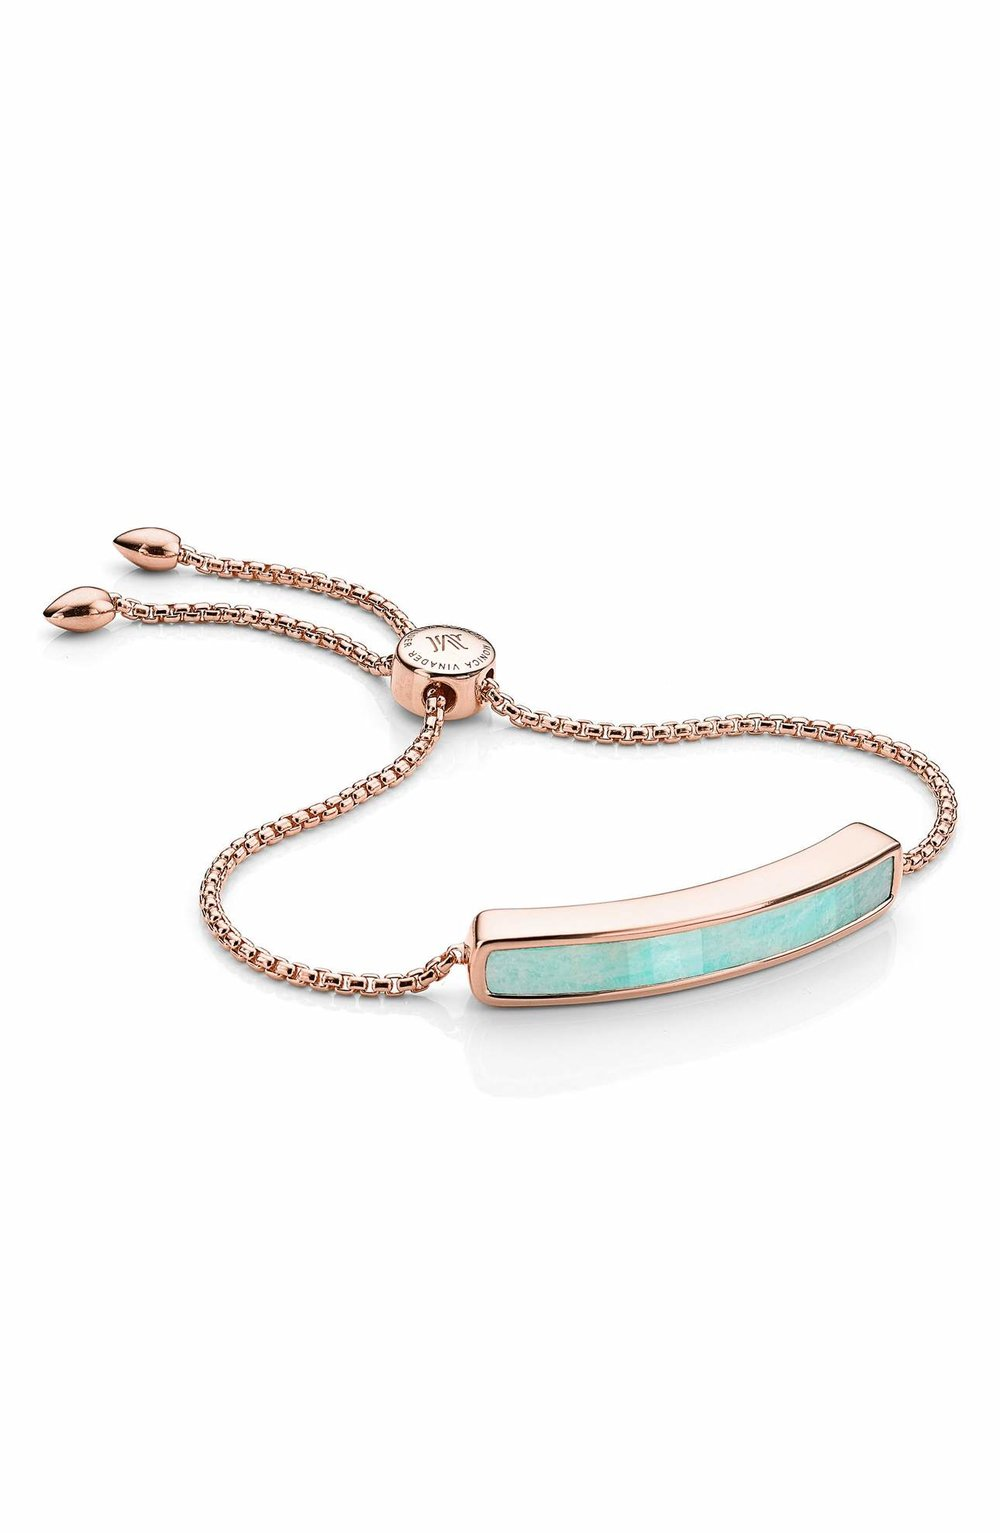 Monica Vinader Baja Stone Bracelet  - Perfect for layering or as an eye-catching standalone piece, this delicate but striking piece makes for a winning gift.